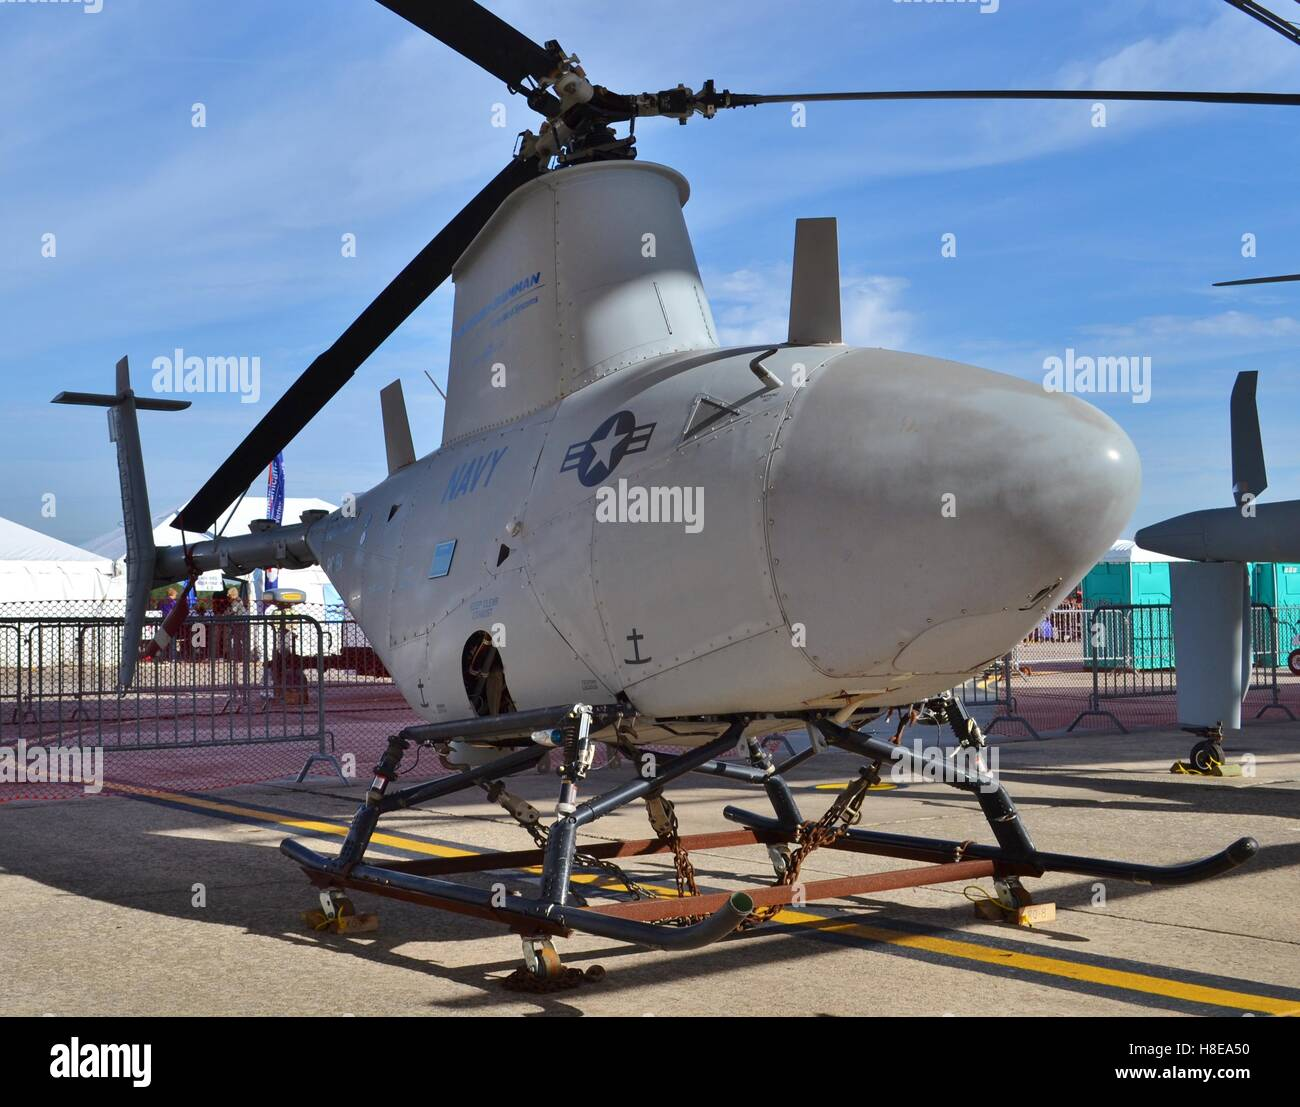 A Northrop Grumman MQ-8 Fire Scout helicopter operated by the U.S. Navy. This is an unmanned surveillance drone. - Stock Image